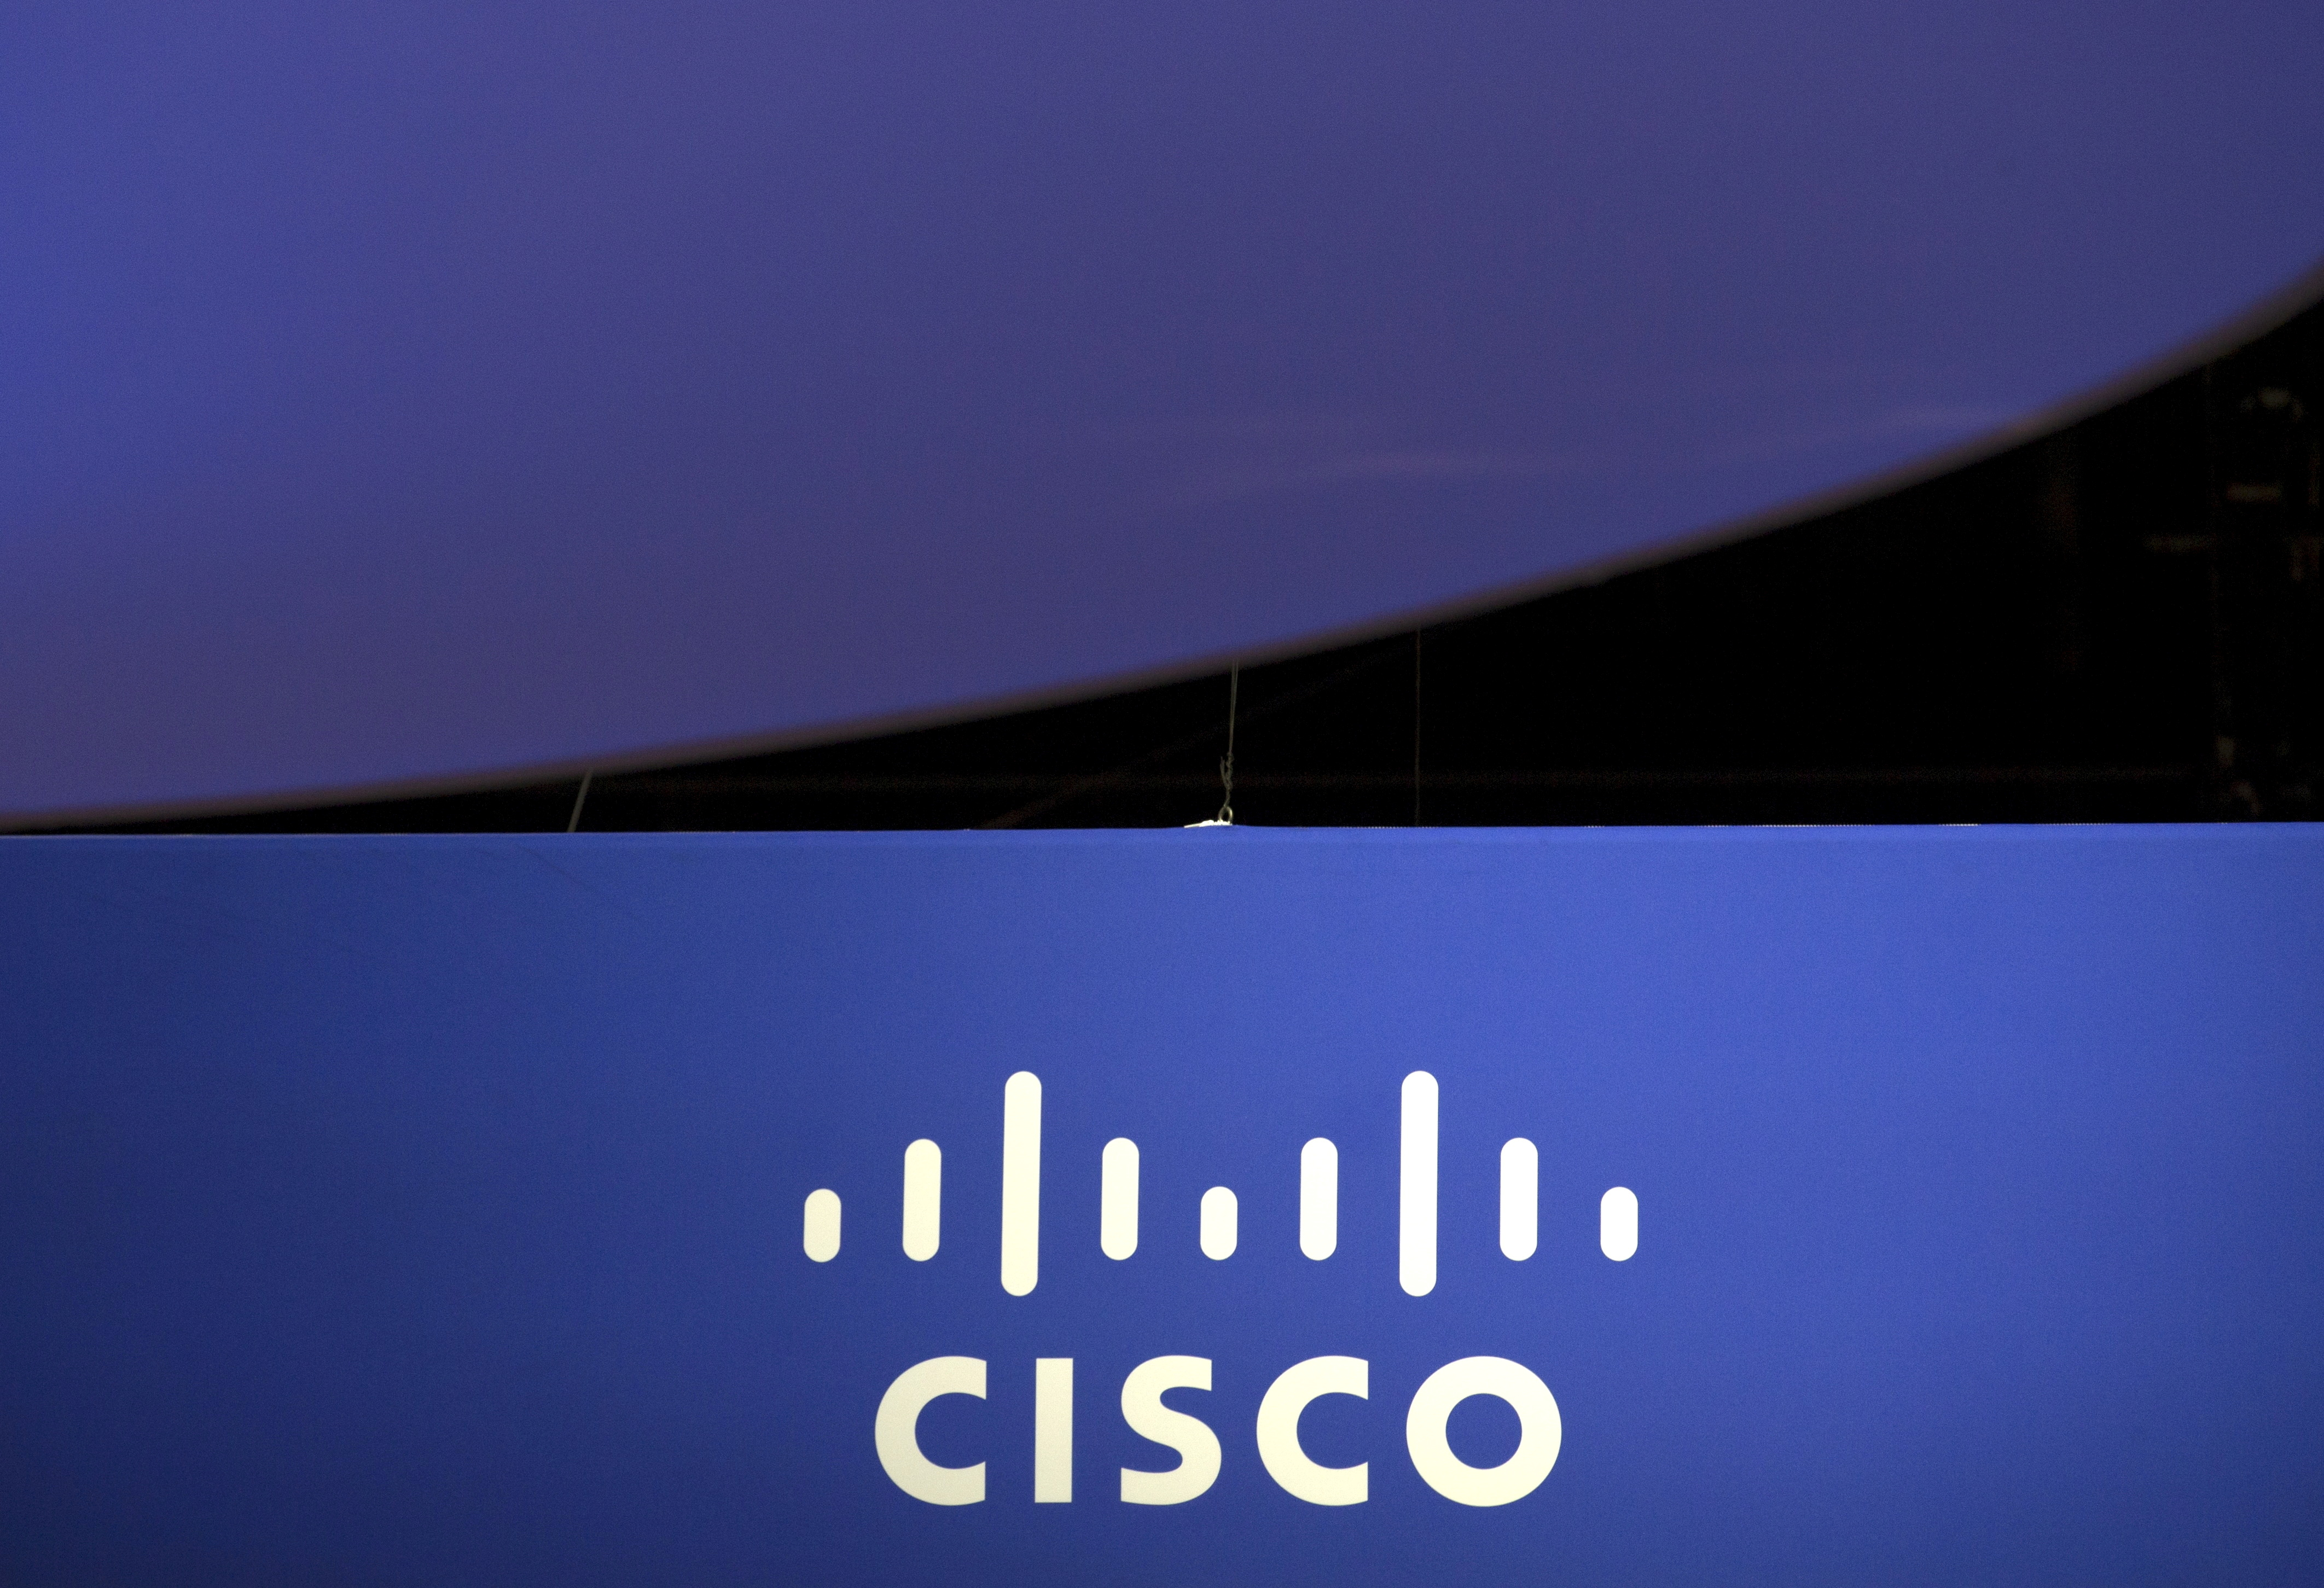 The Cisco Systems logo is seen as part of a display at the Microsoft Ignite technology conference in Chicago, Illinois, U.S., May 4, 2015. REUTERS/Jim Young